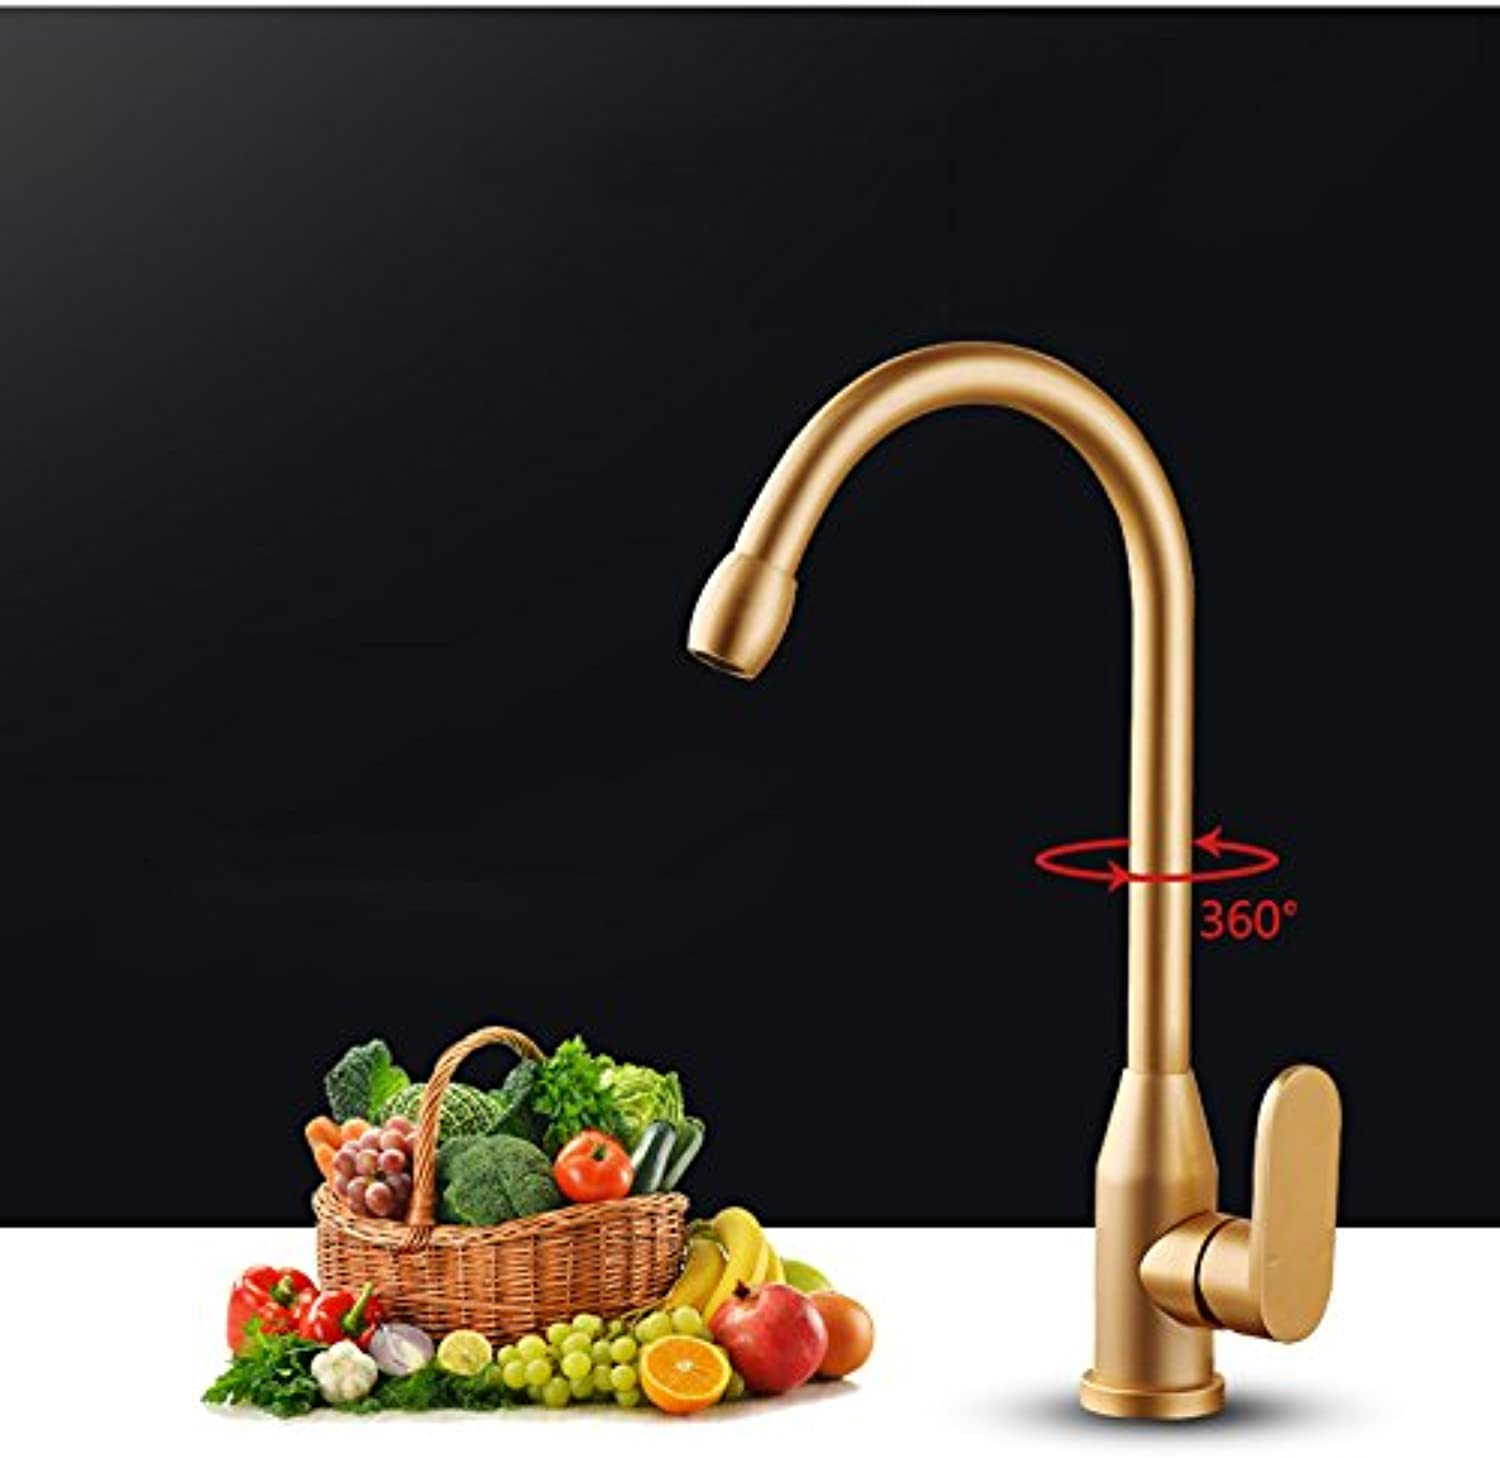 Makej gold Kitchen Faucet Space Aluminum gold Single Handle Hot Cold Water Vessel Sink Basin Tap Mixer 360 redating